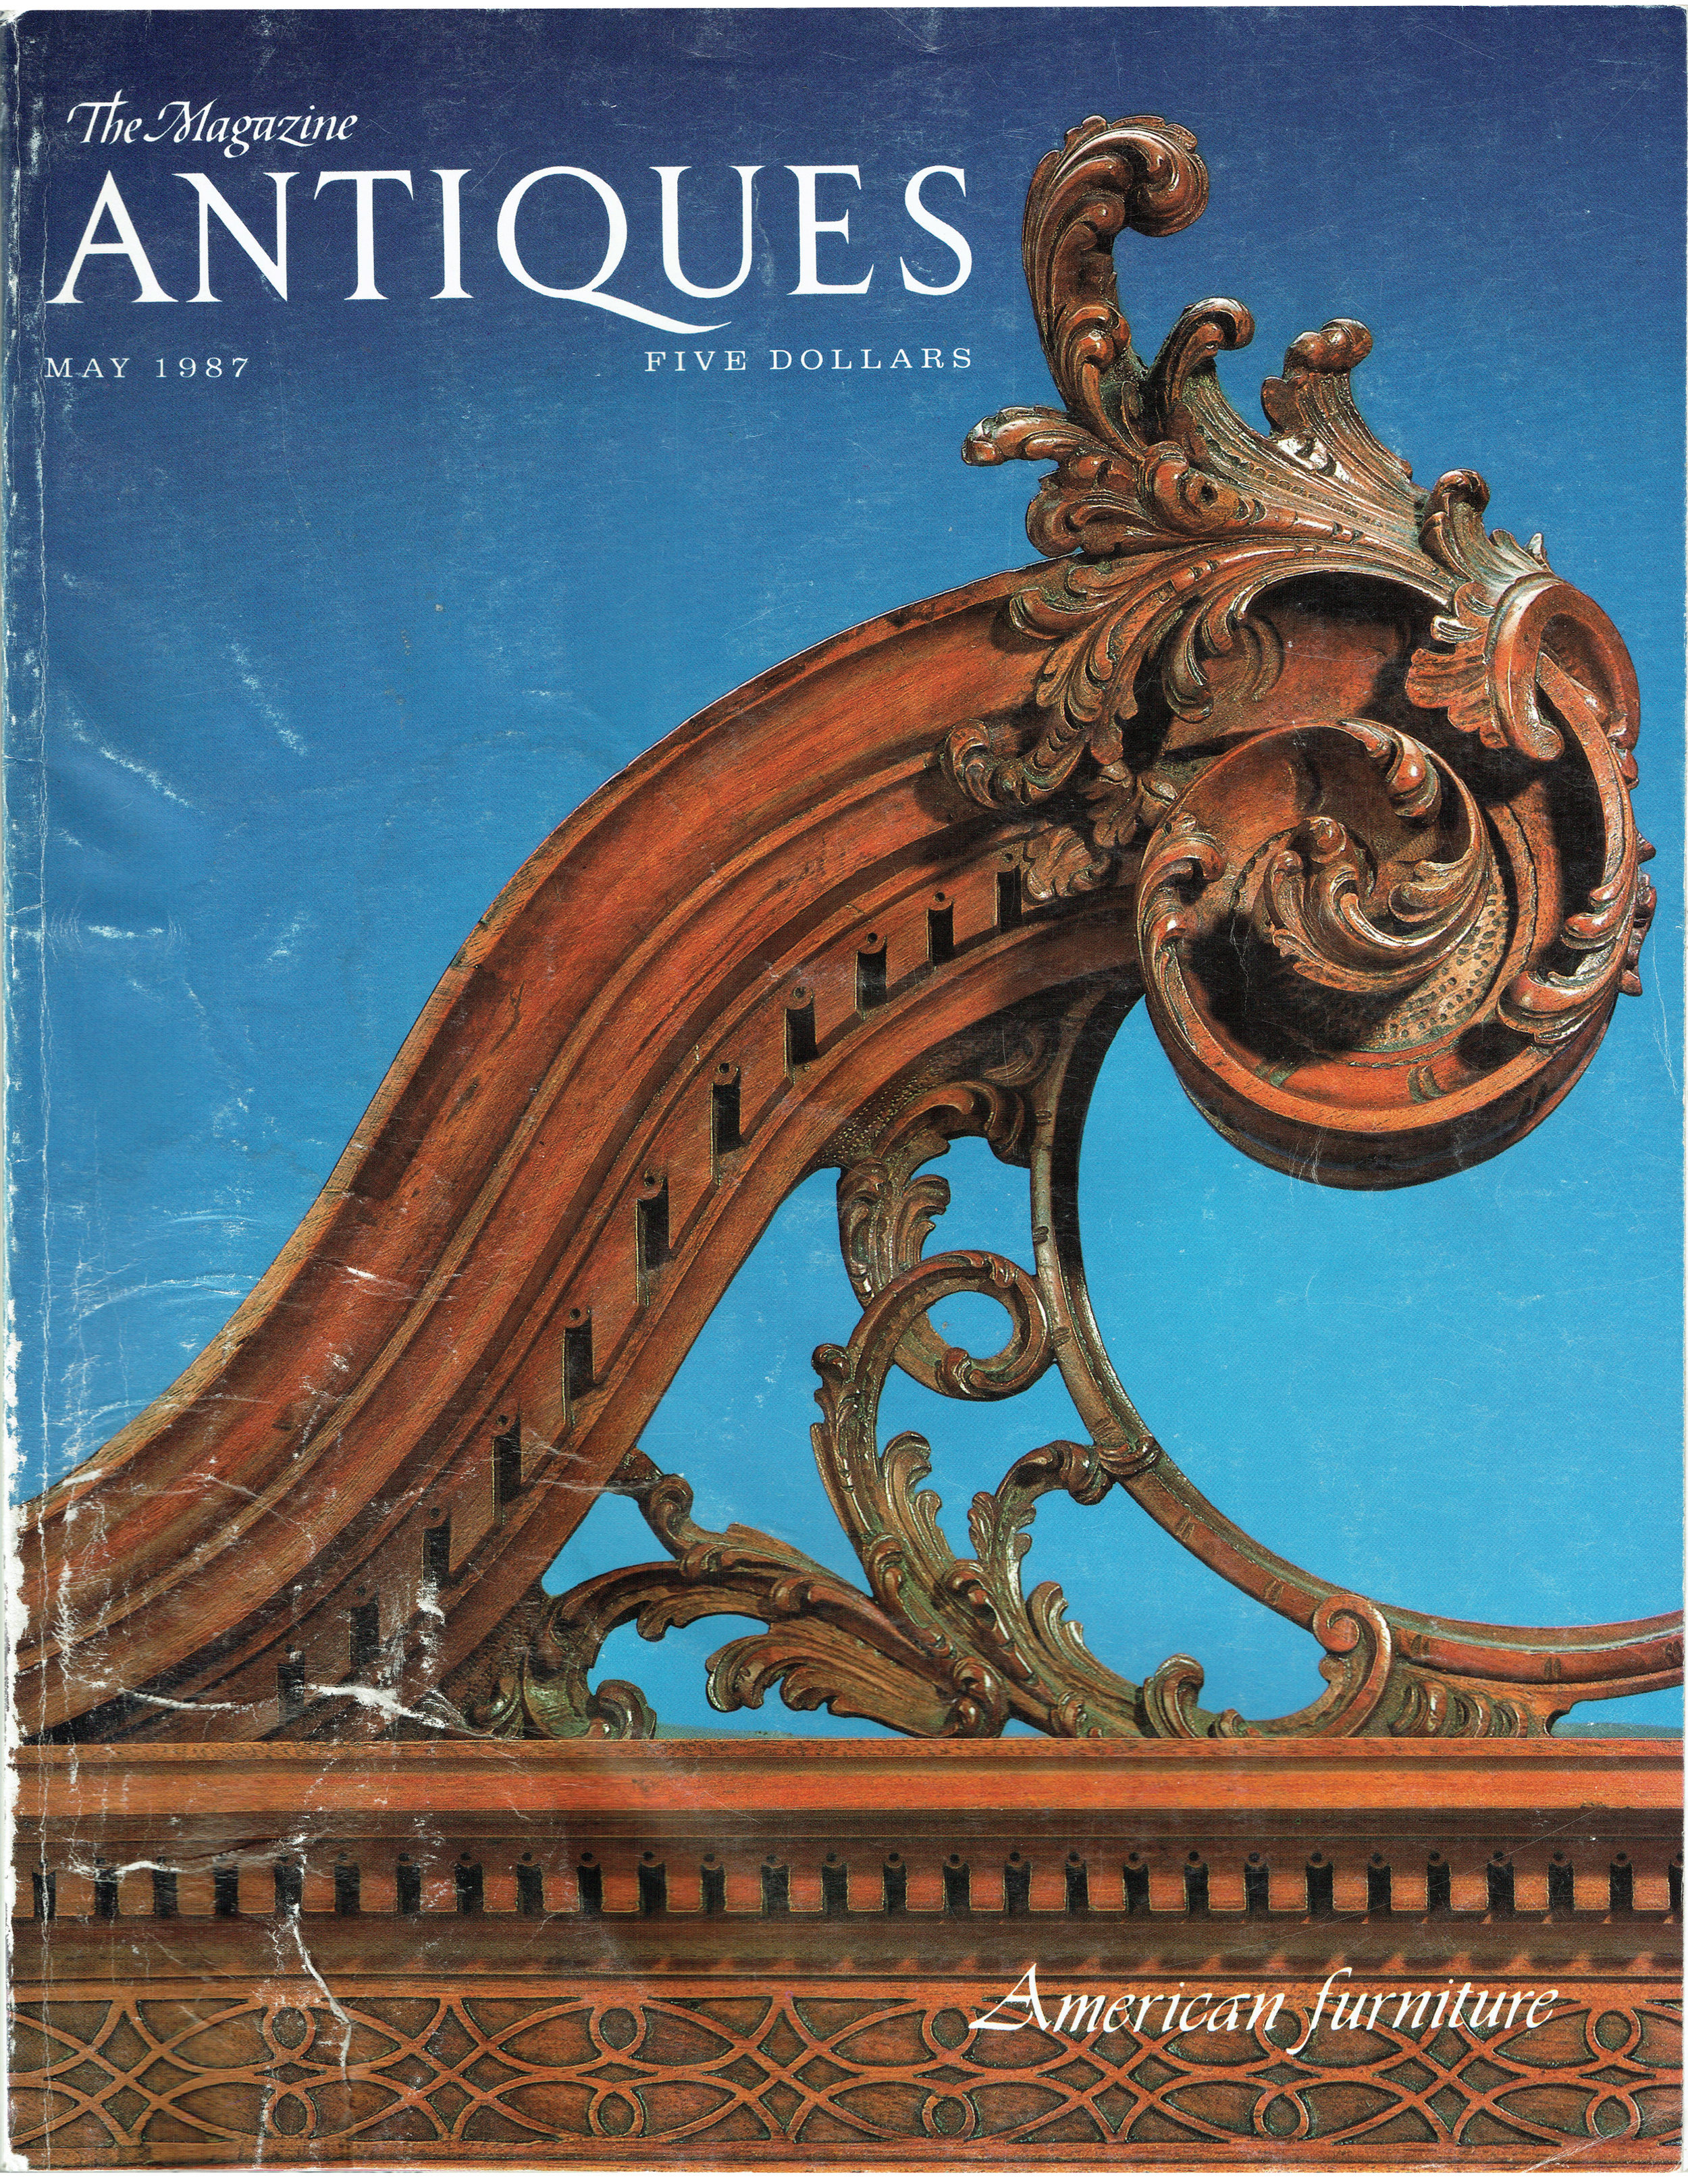 2018.01.16 CPF Antiques Article 01 Cover.jpg